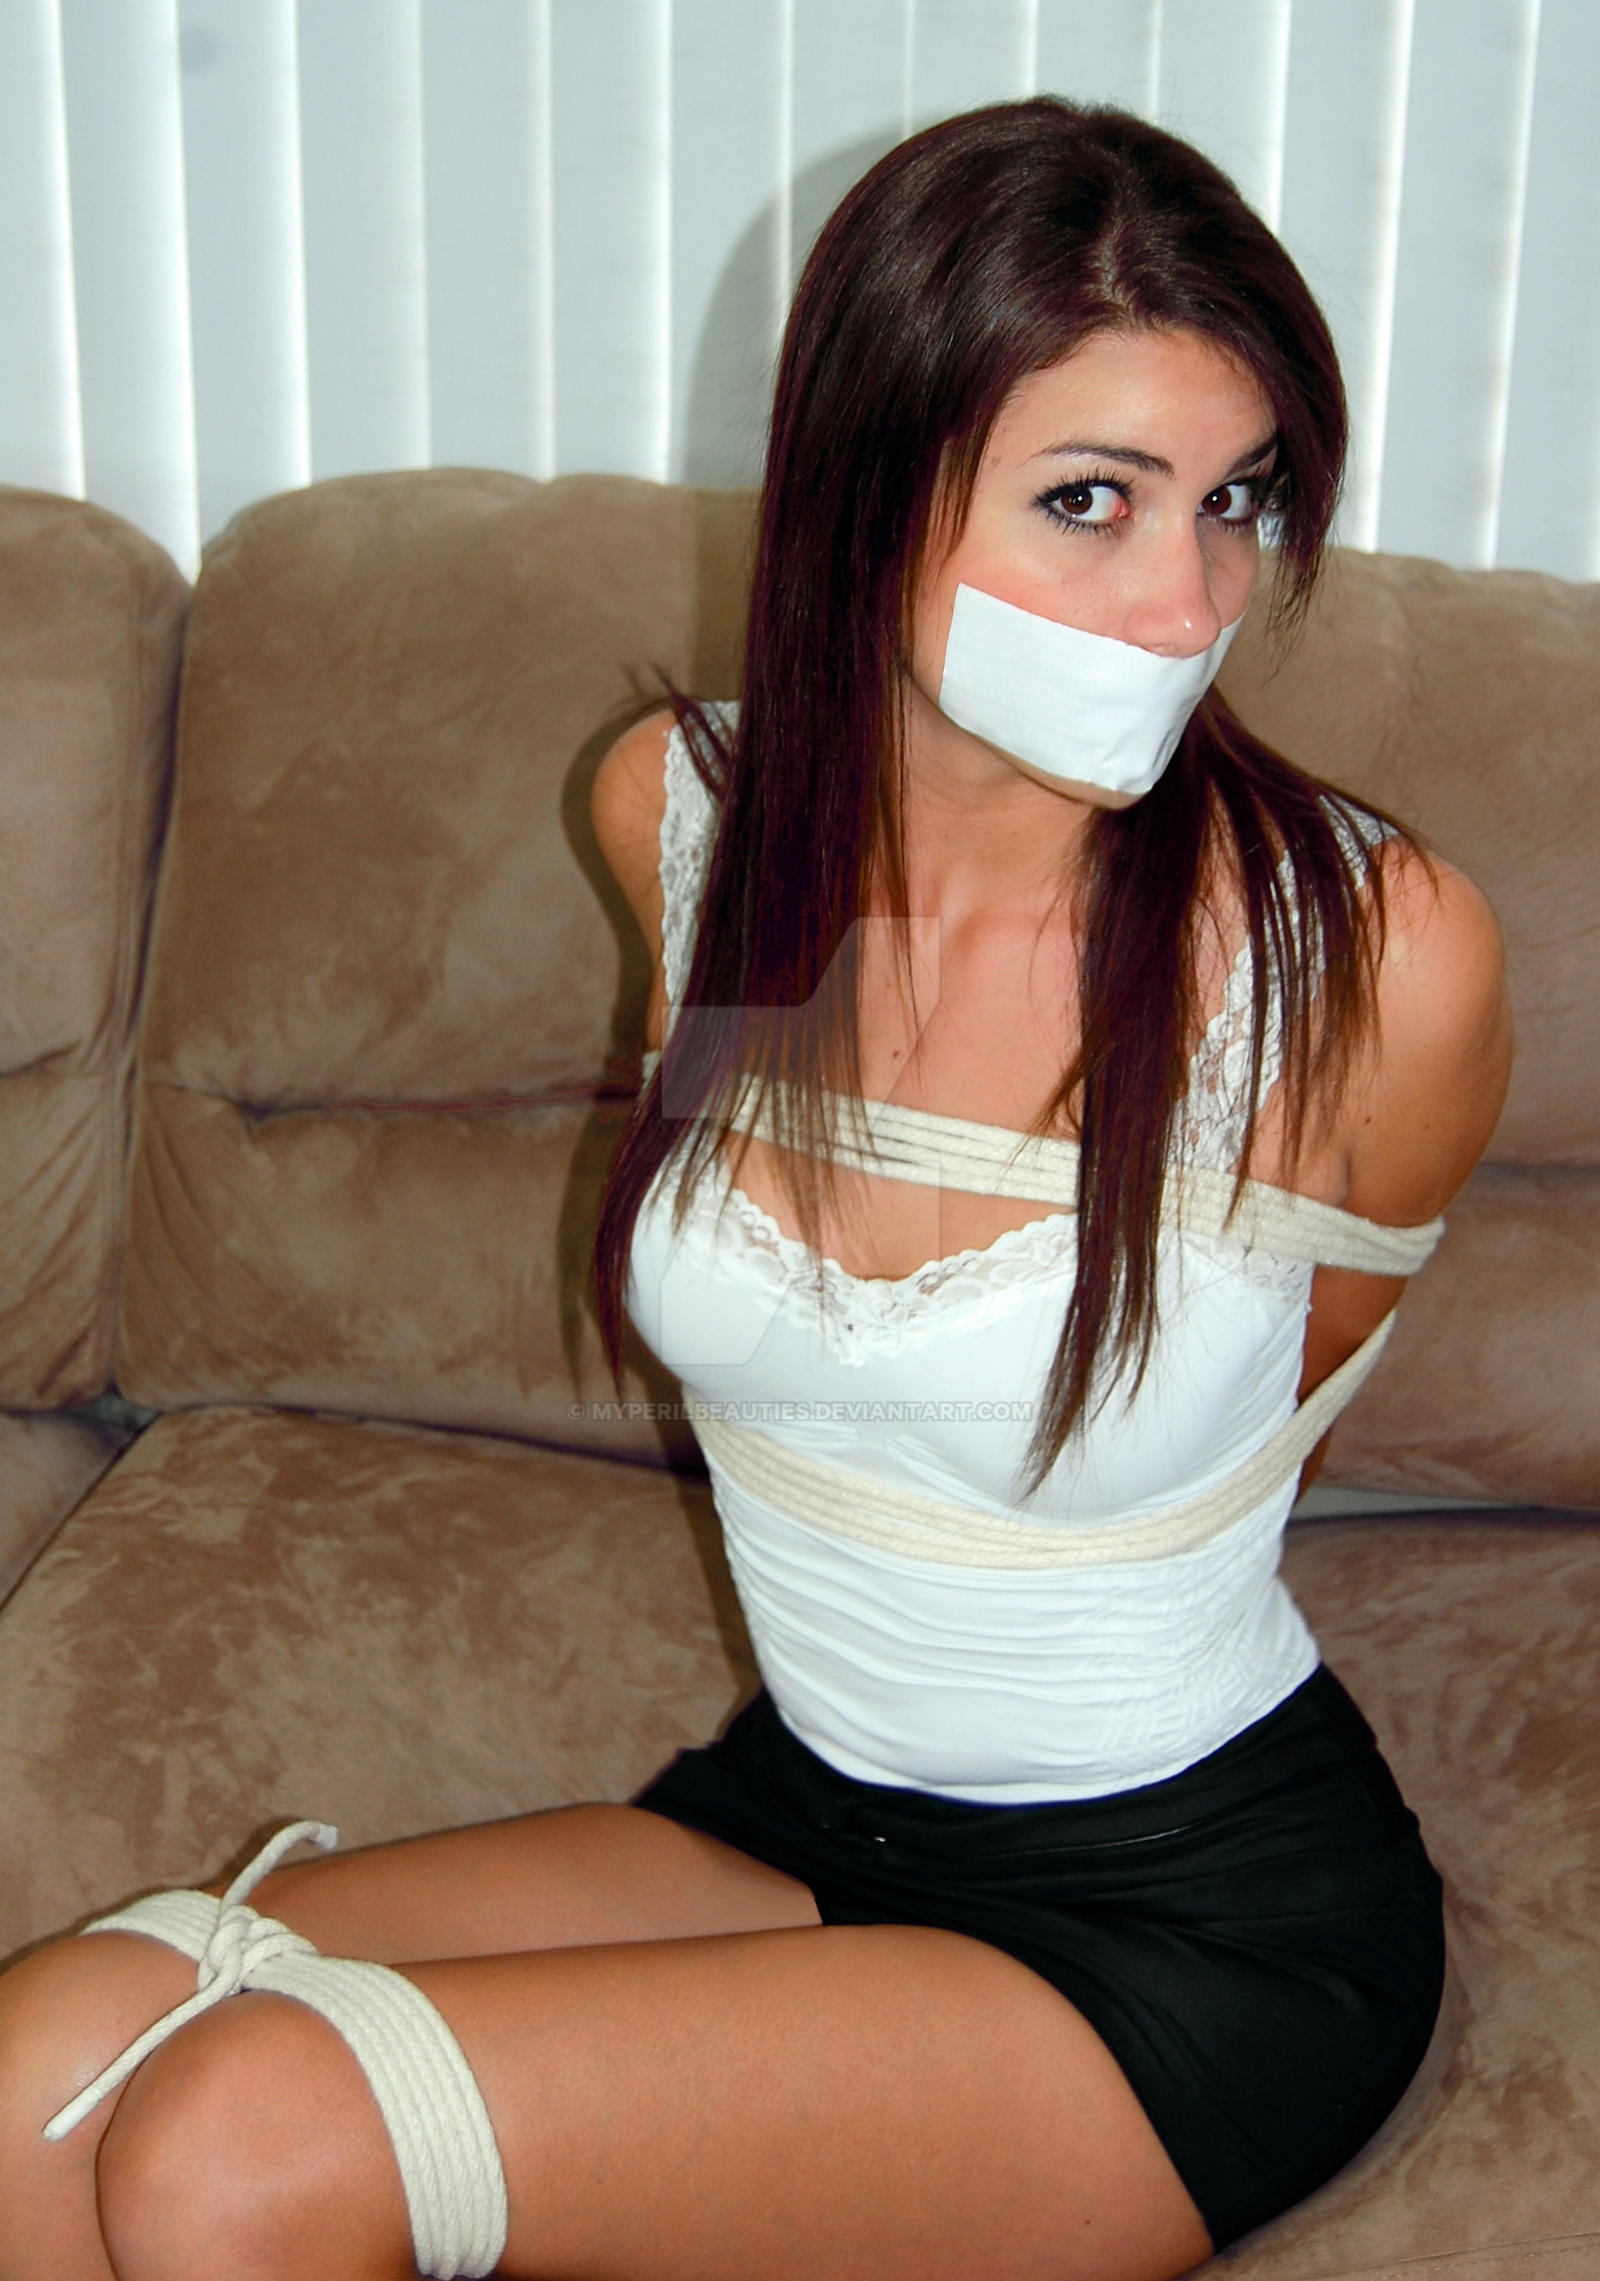 Tied gagged girl gallery — photo 8